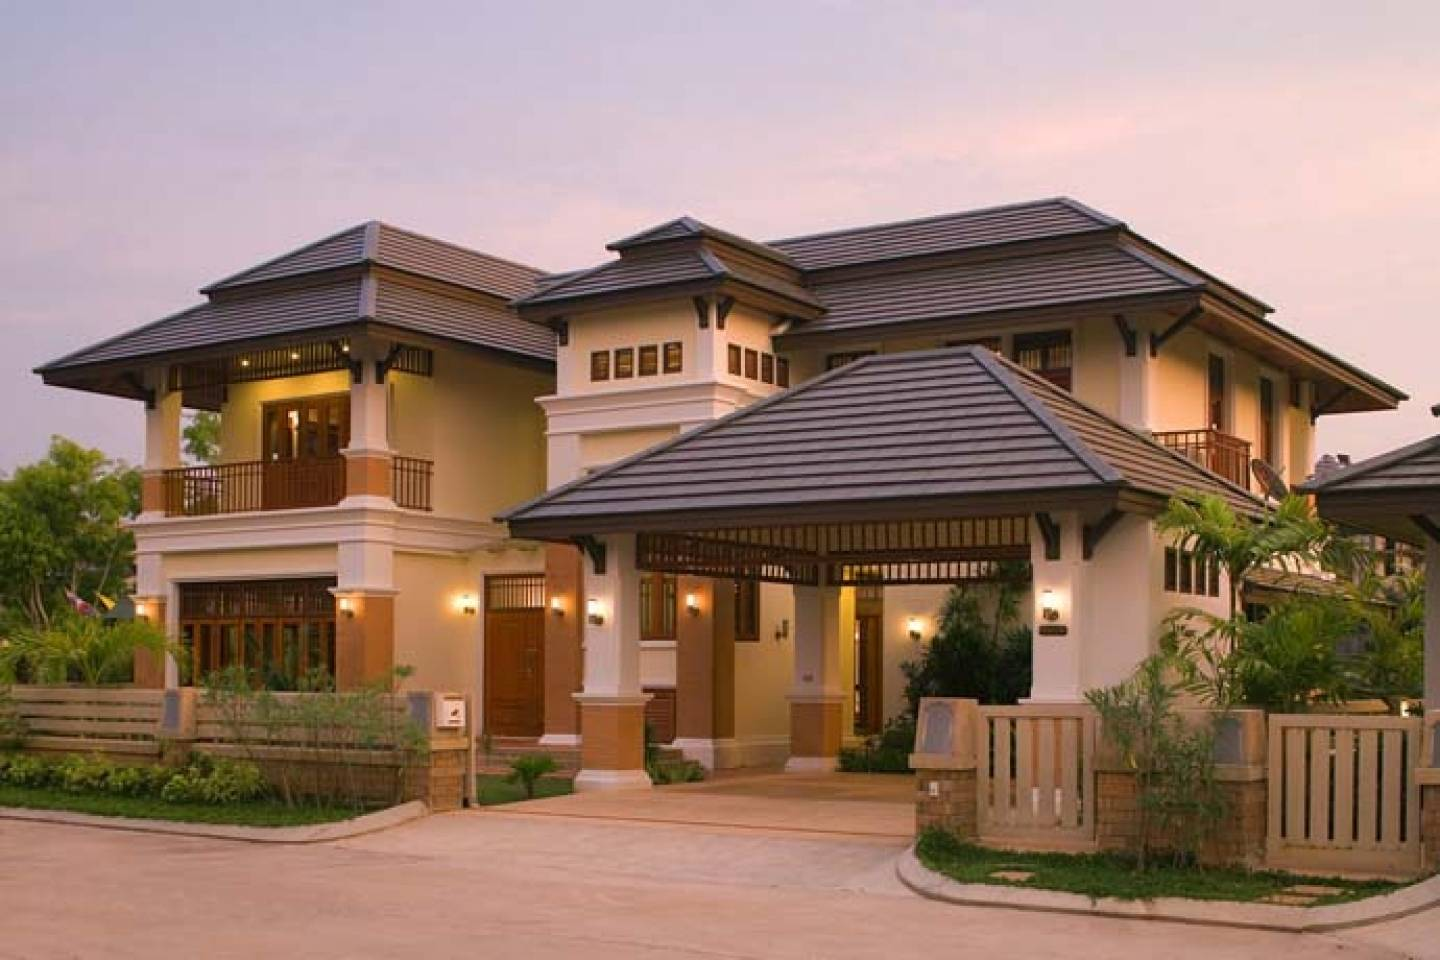 Best Home Design Tips Simple Interior Software House Plans 167210